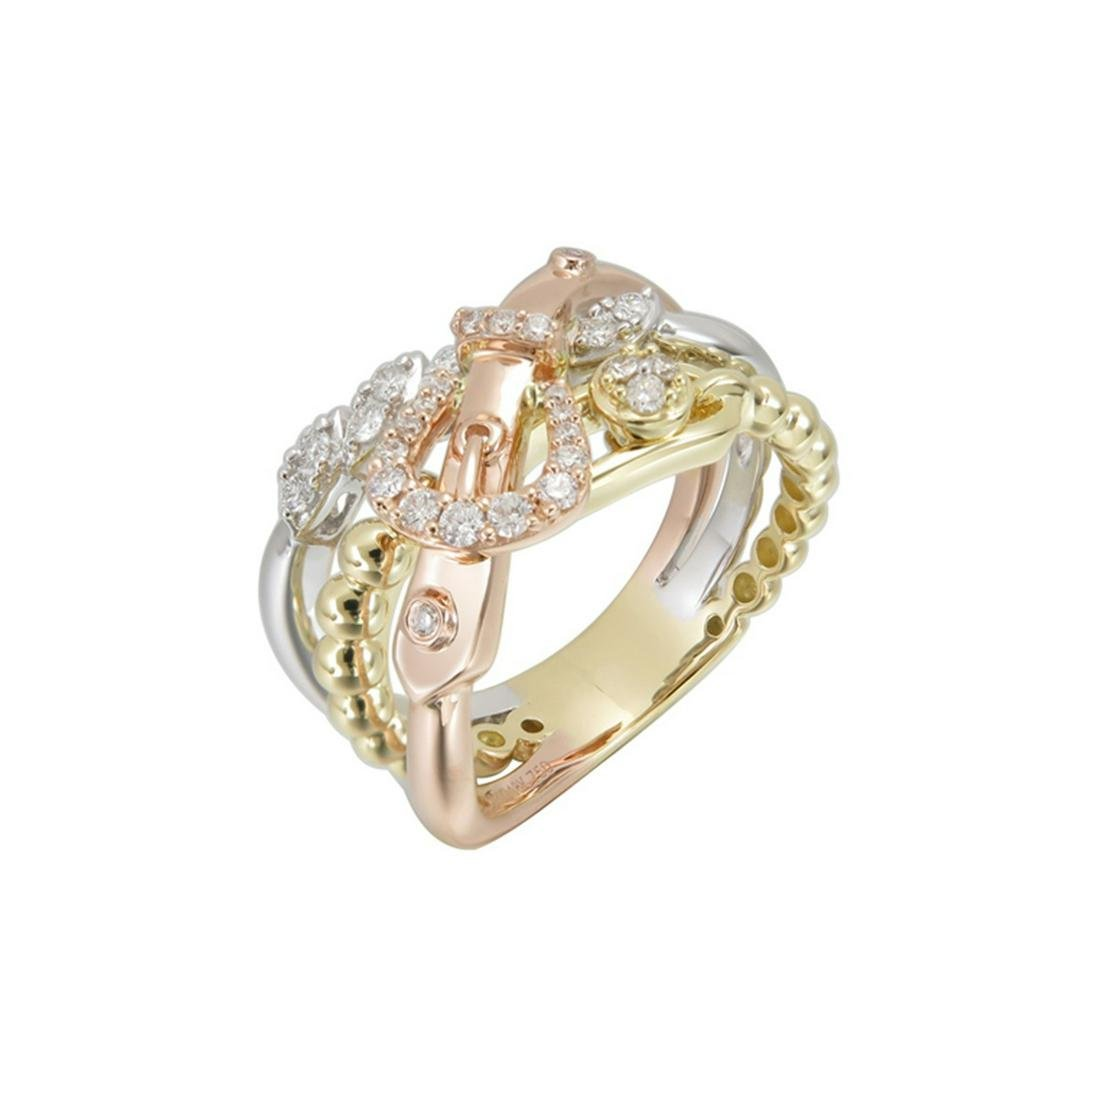 Certified 18k/14k Gold and Diamonds Ring